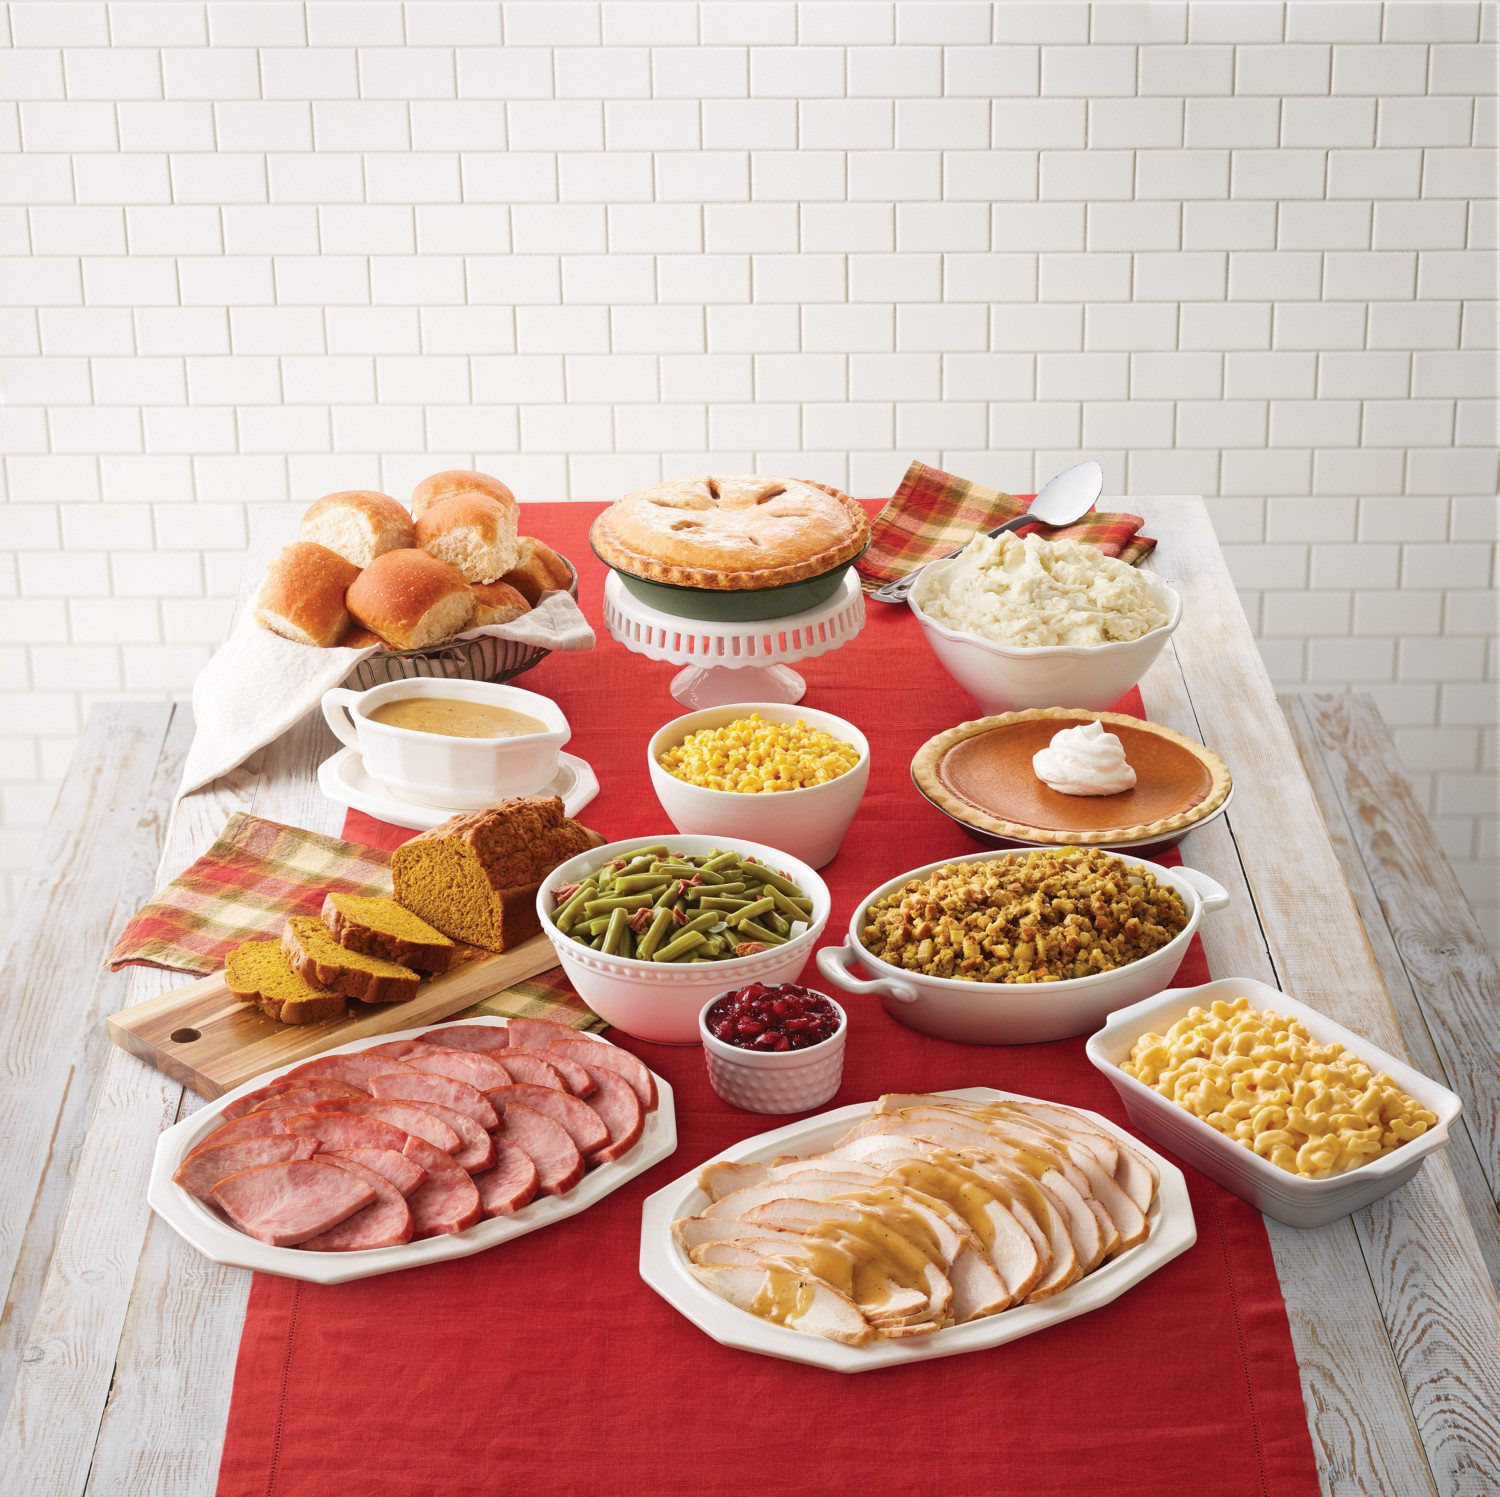 Pre Cooked Thanksgiving Dinner Walmart 2020  The top 30 Ideas About Walmart Pre Cooked Thanksgiving